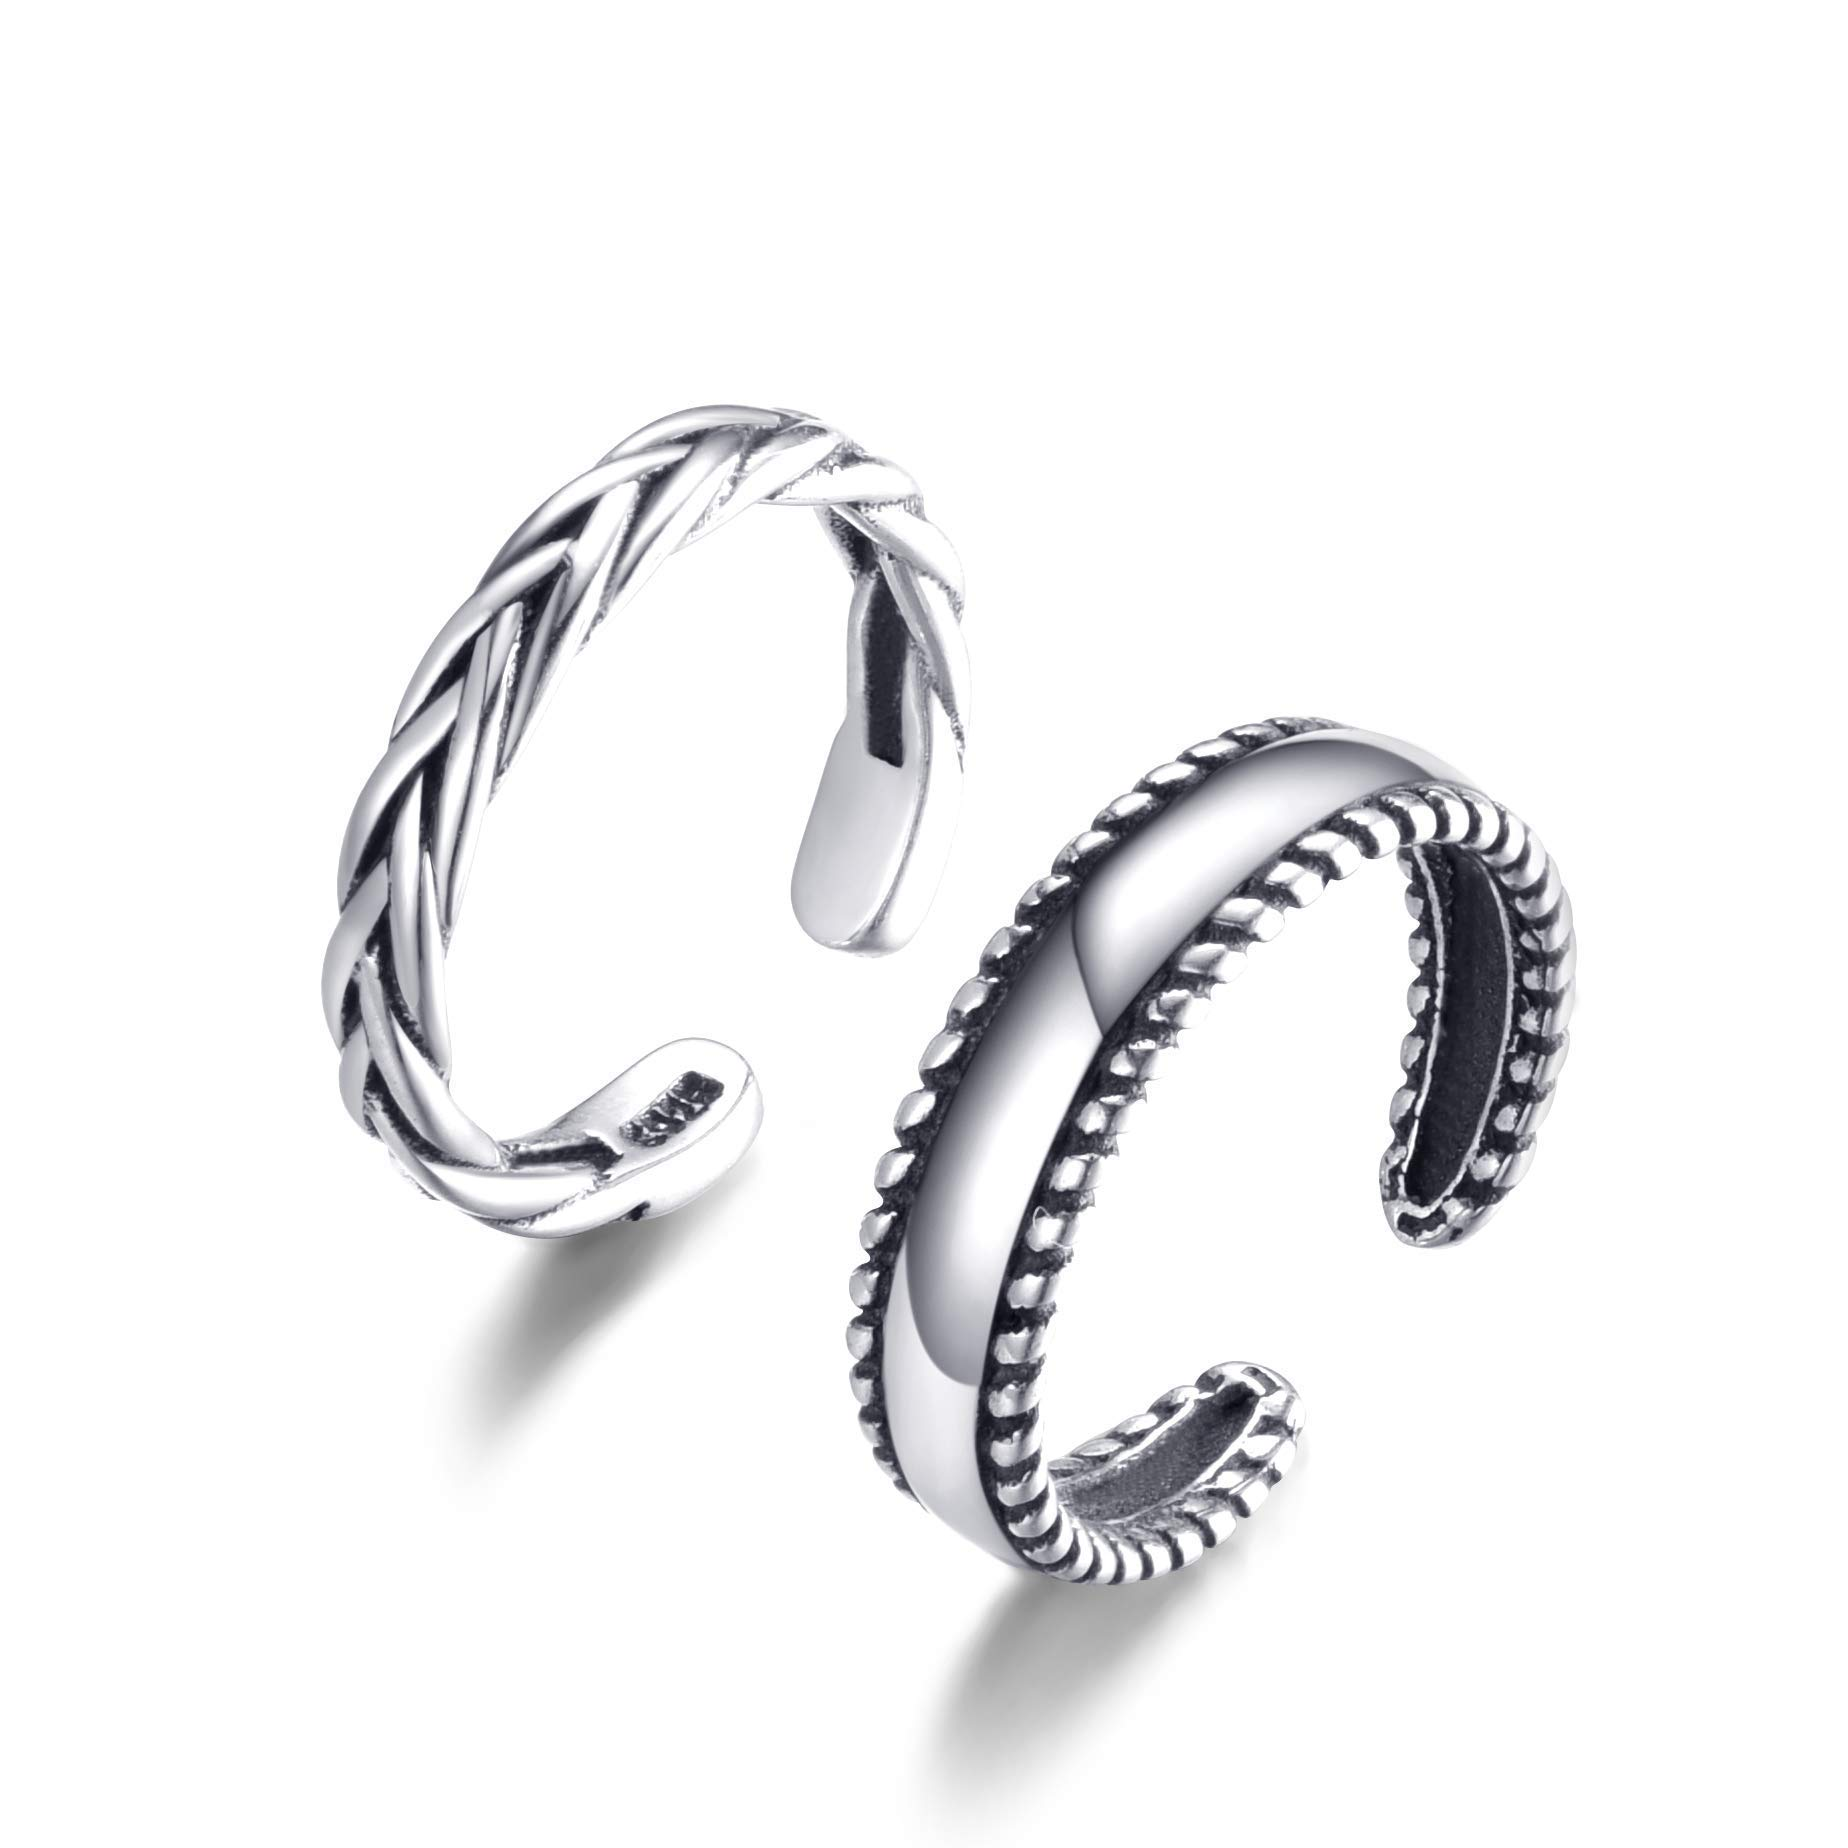 Elitven Mothers Day Present 2PCS Sterling Silver Open Adjustable Toe Rings Vintage Braid Rings for Women (Braided Style)…